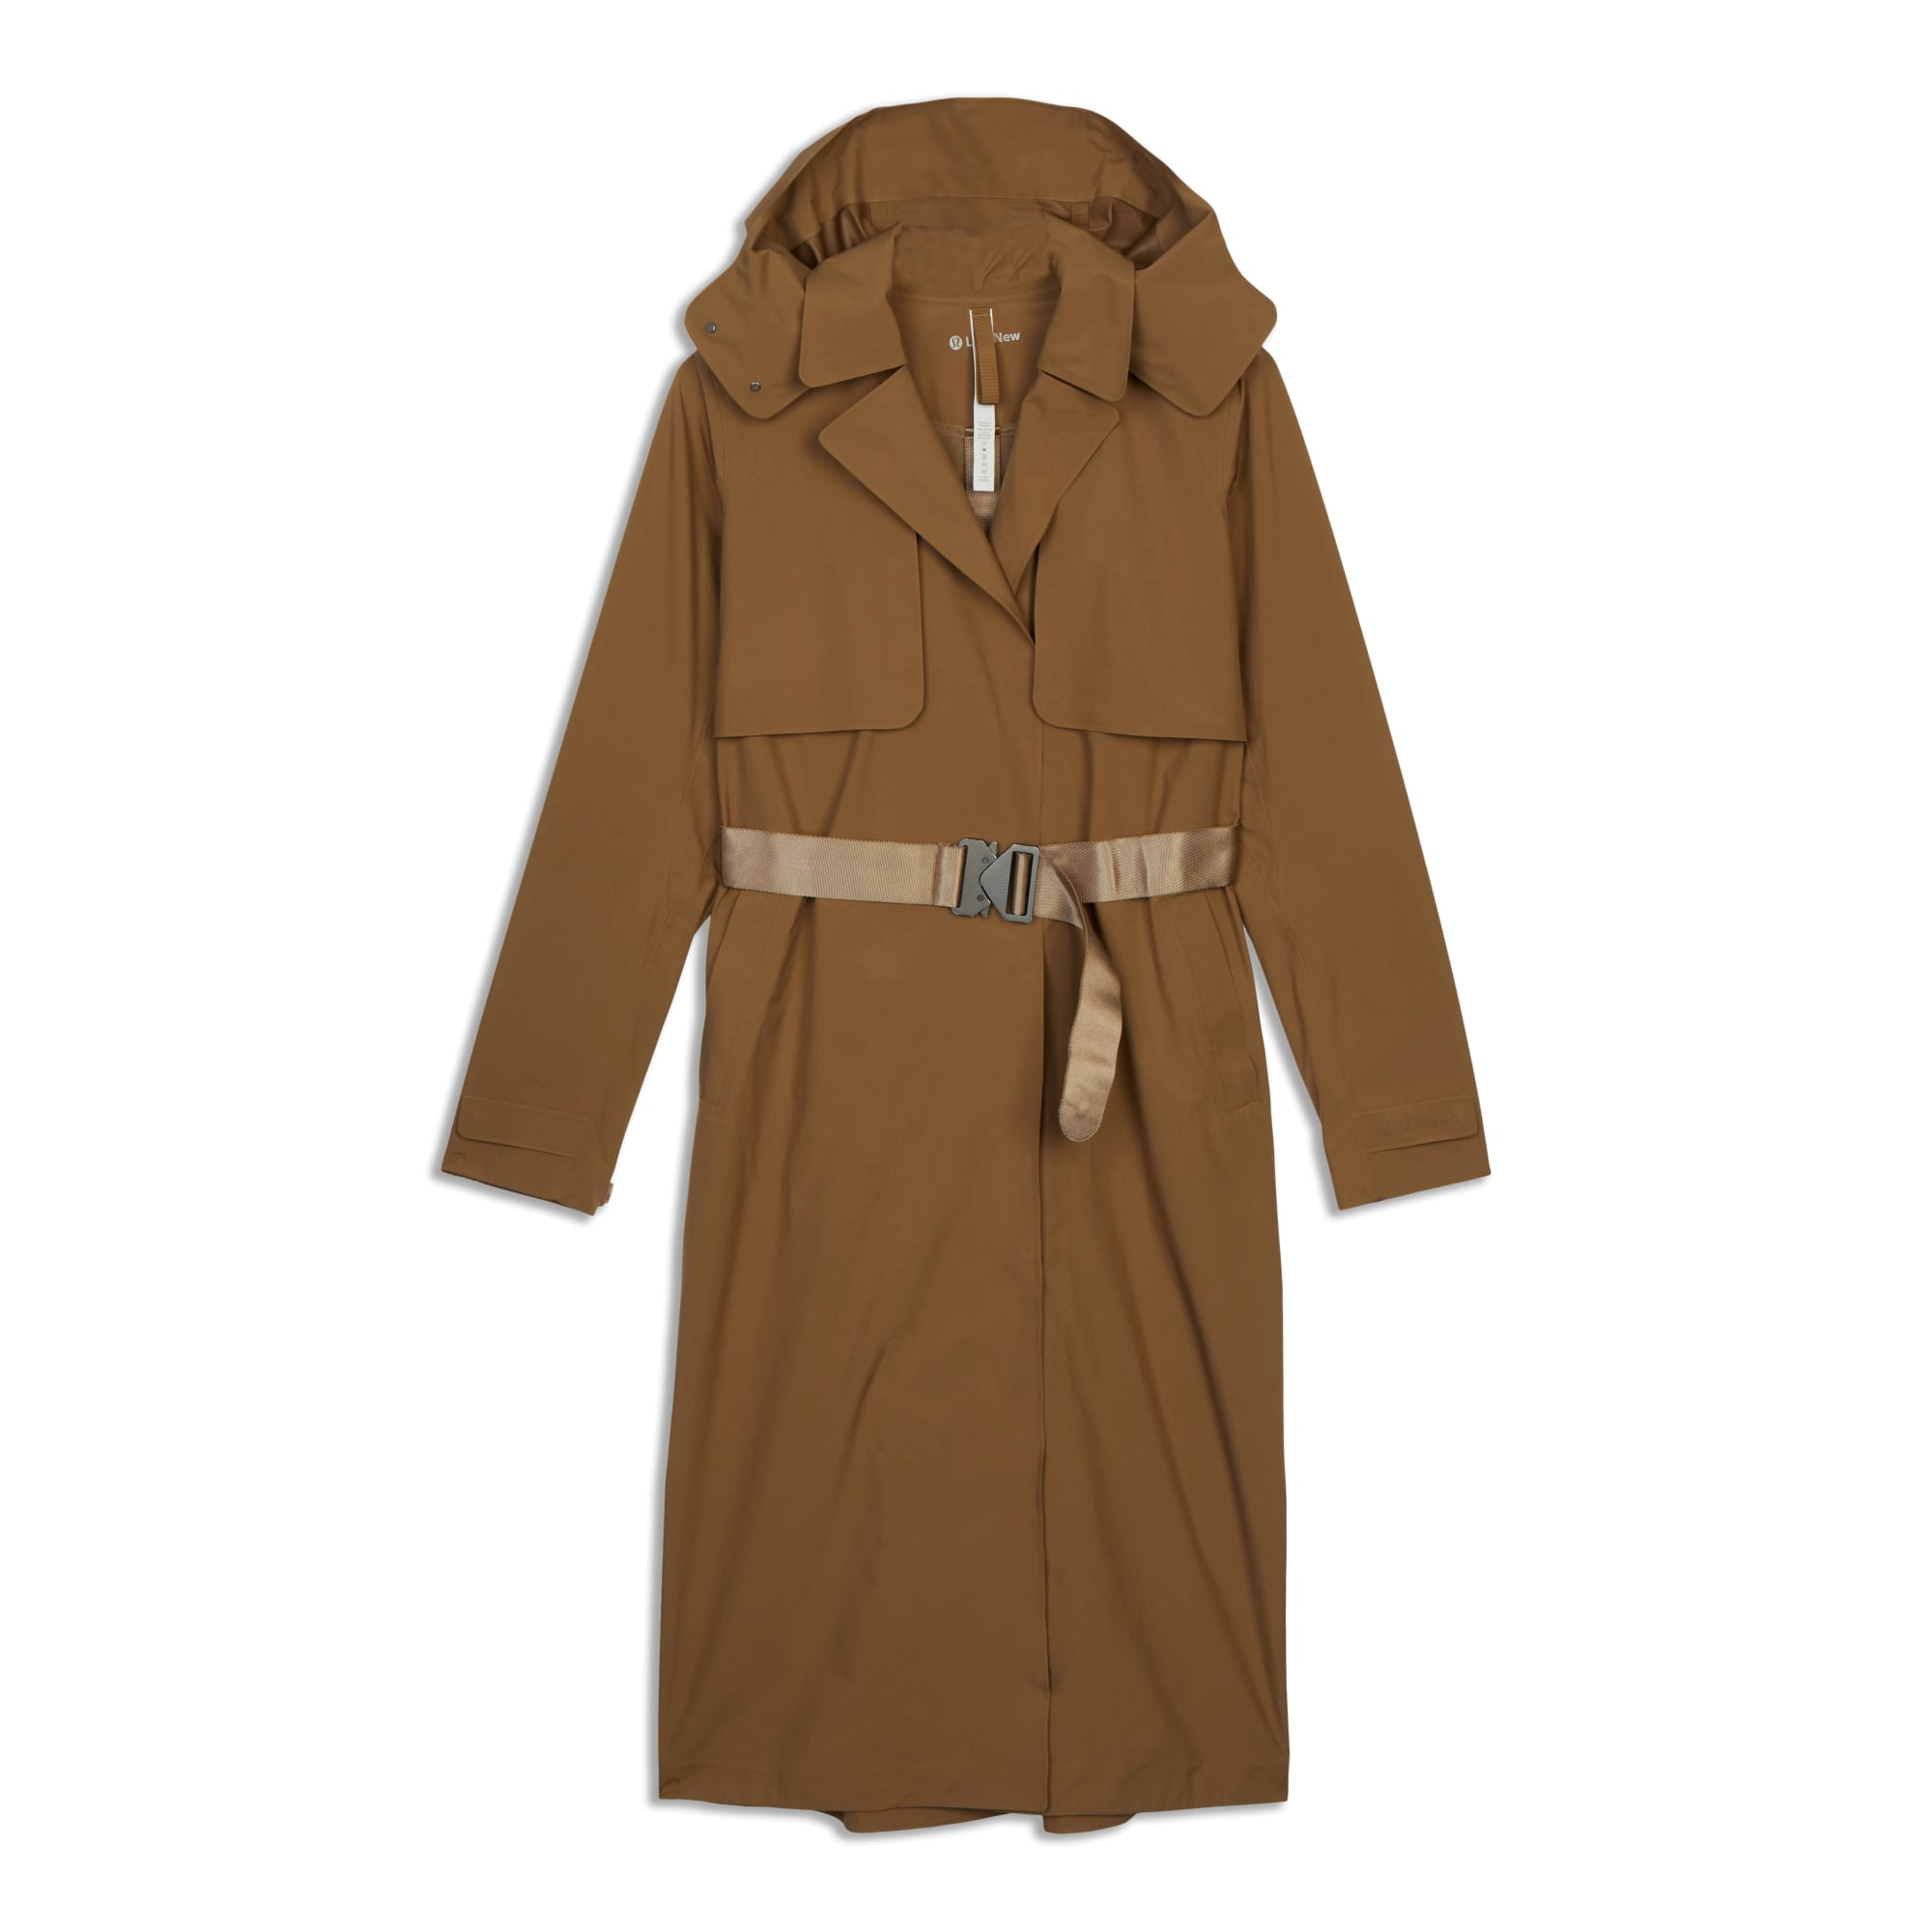 Main product image: Always There Trench Coat - Resale